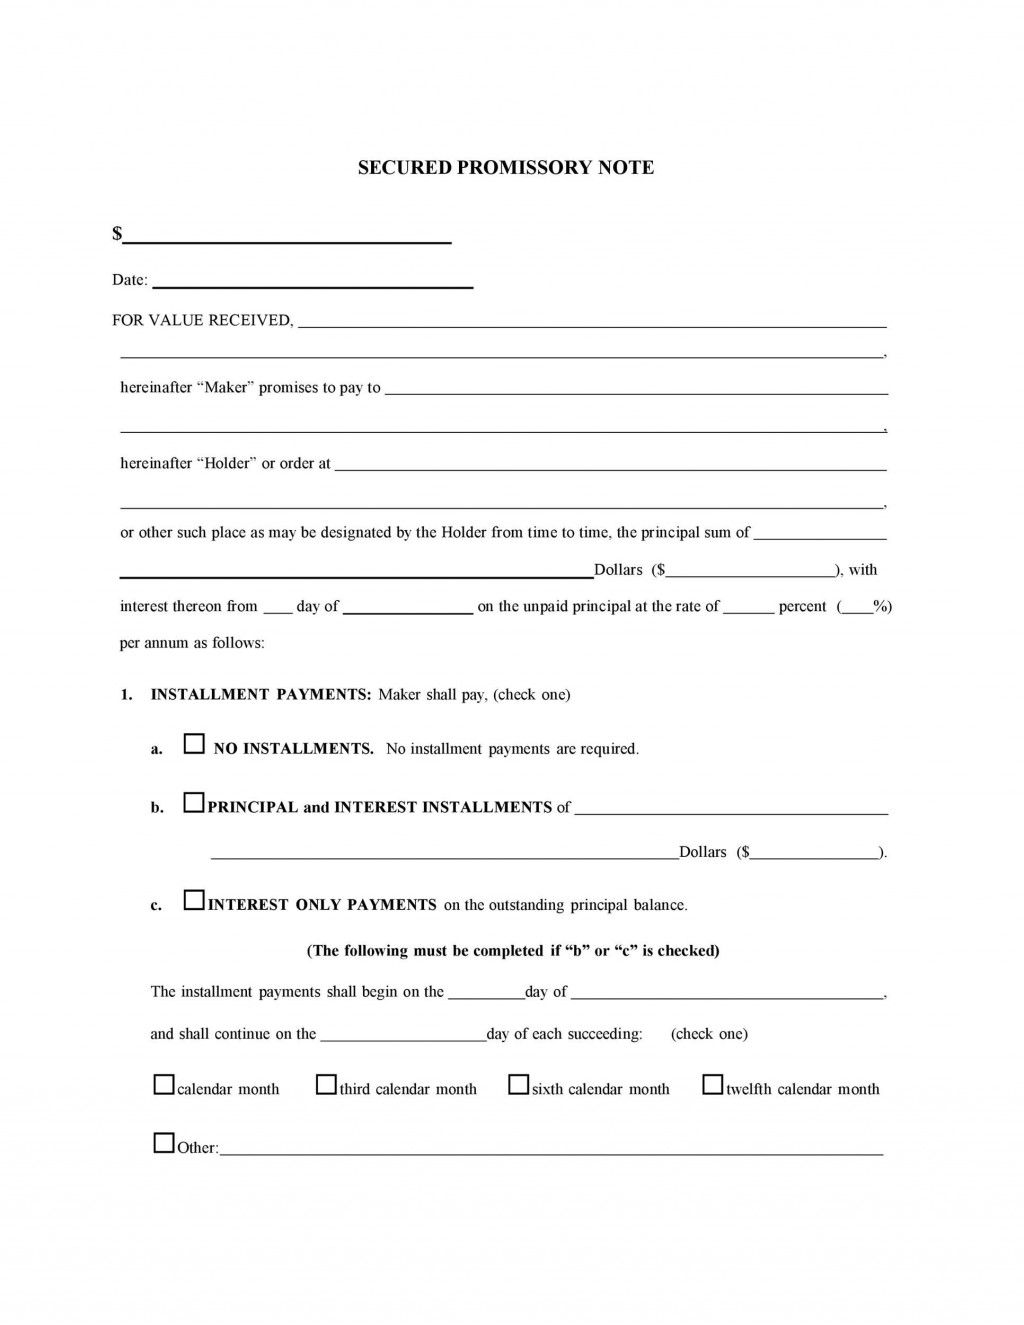 004 Frightening Promissory Note Word Template High Resolution  2007 Document Uk IndiaLarge